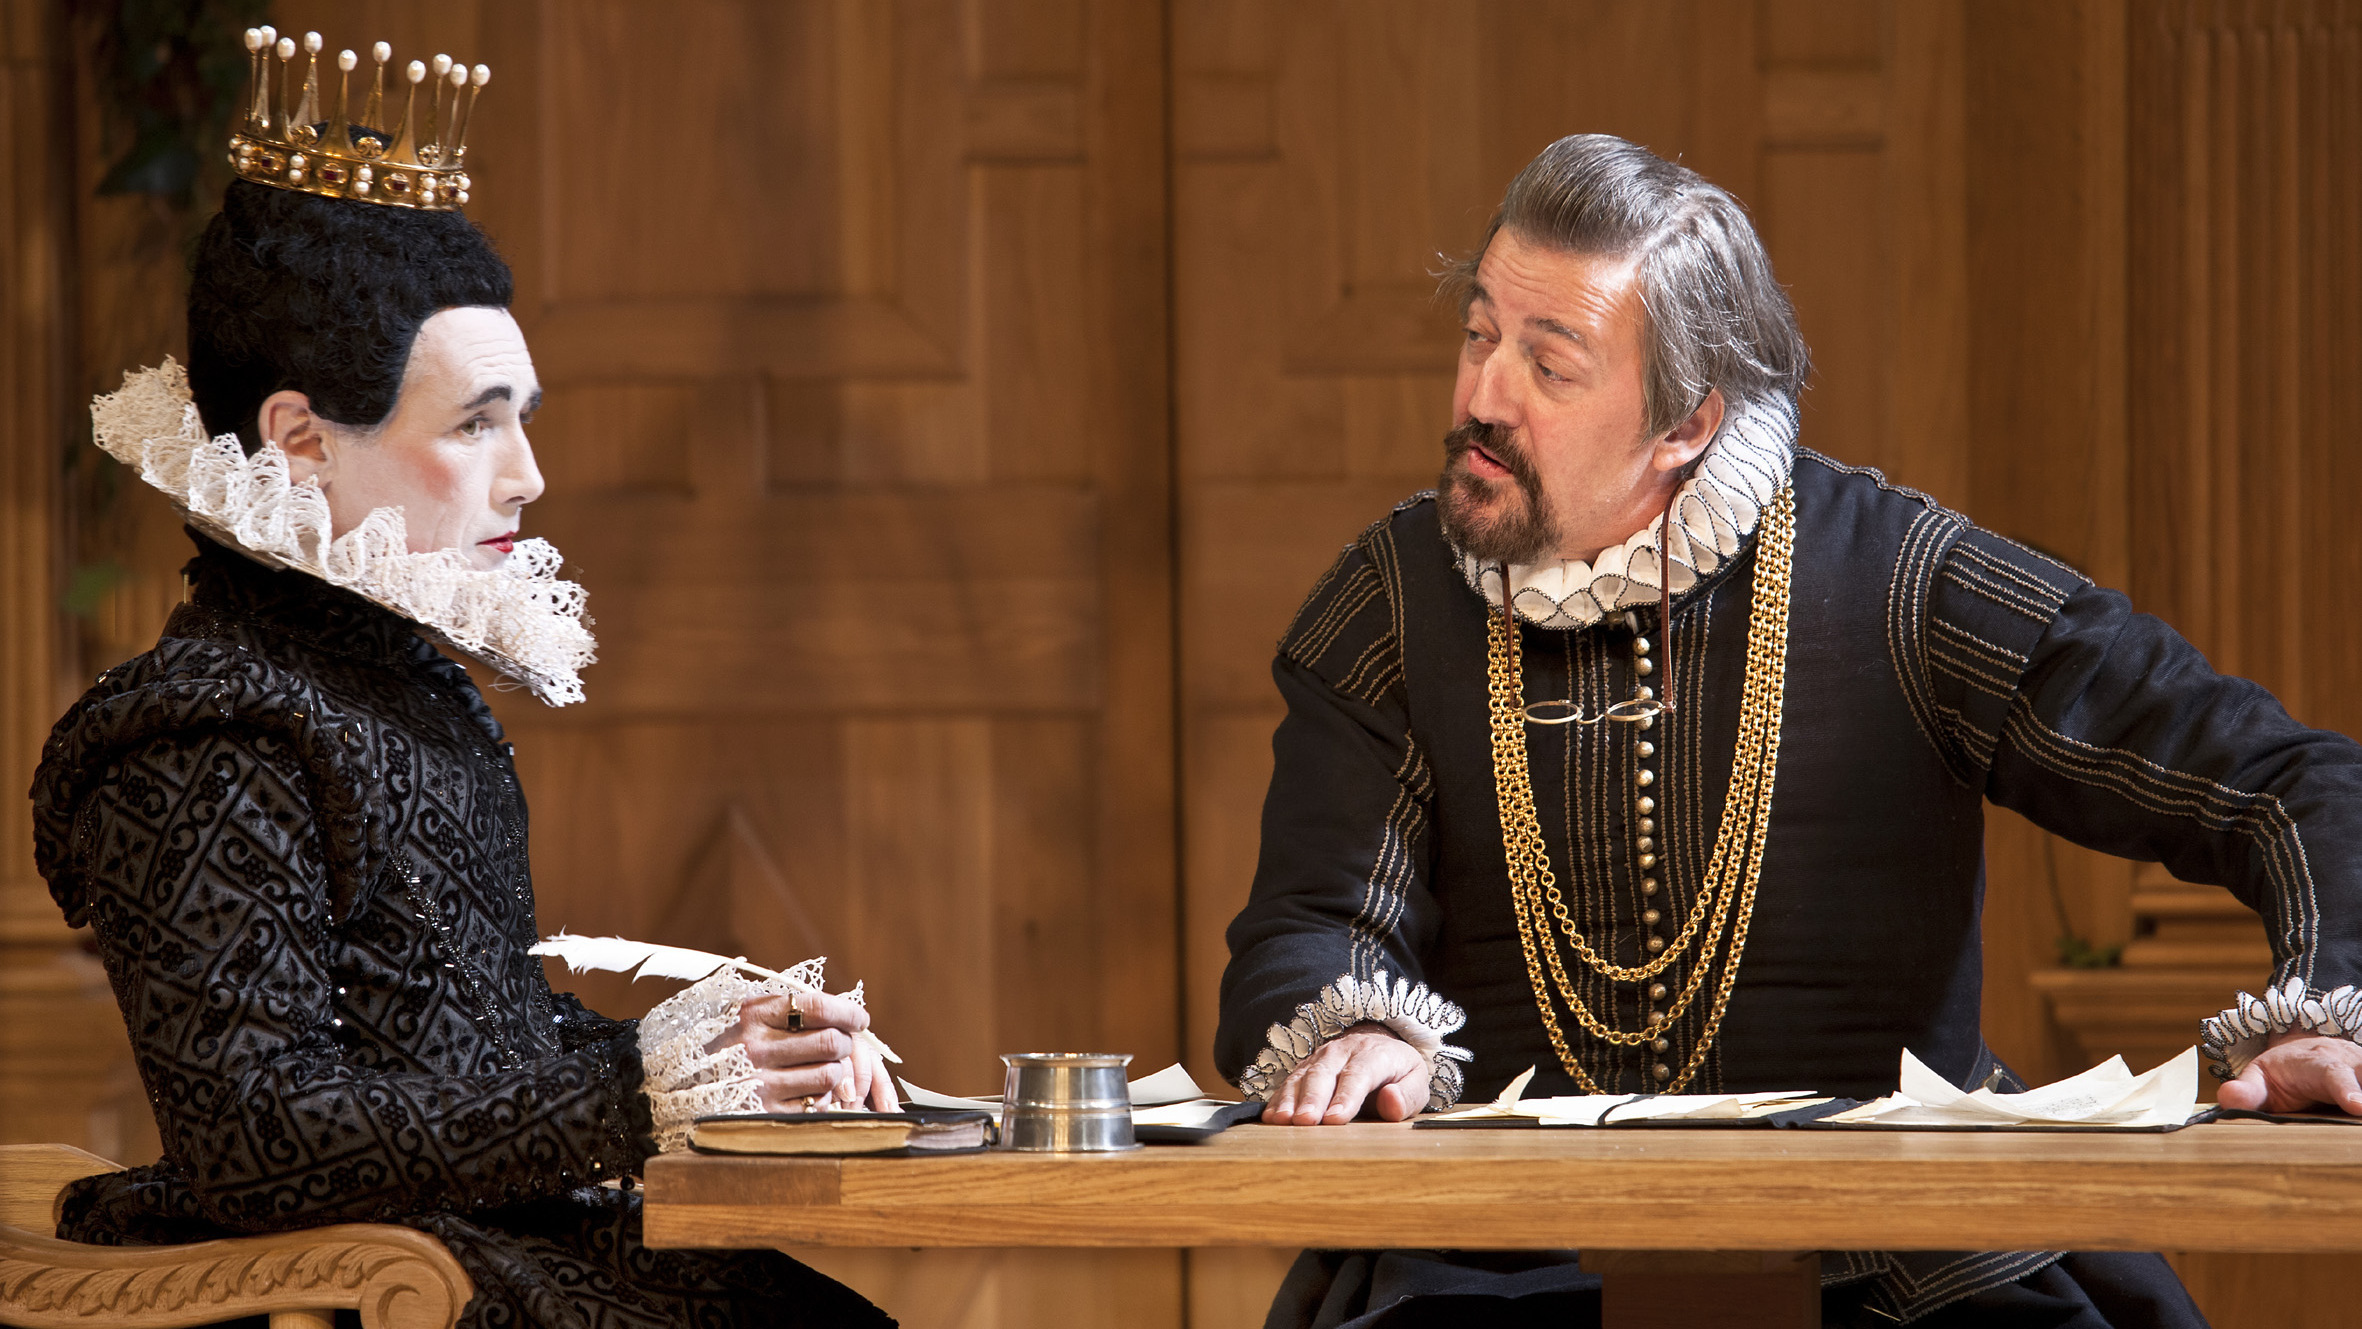 critique on twelfth night Twelfth night remains among the most popular of shakespearean comedies on the stage while some directors stress the comic aspects of the drama, others comment on twelfth night as a romantic comedy you have clearly selected an excellent example of one of shakespeare's romantic comedies.